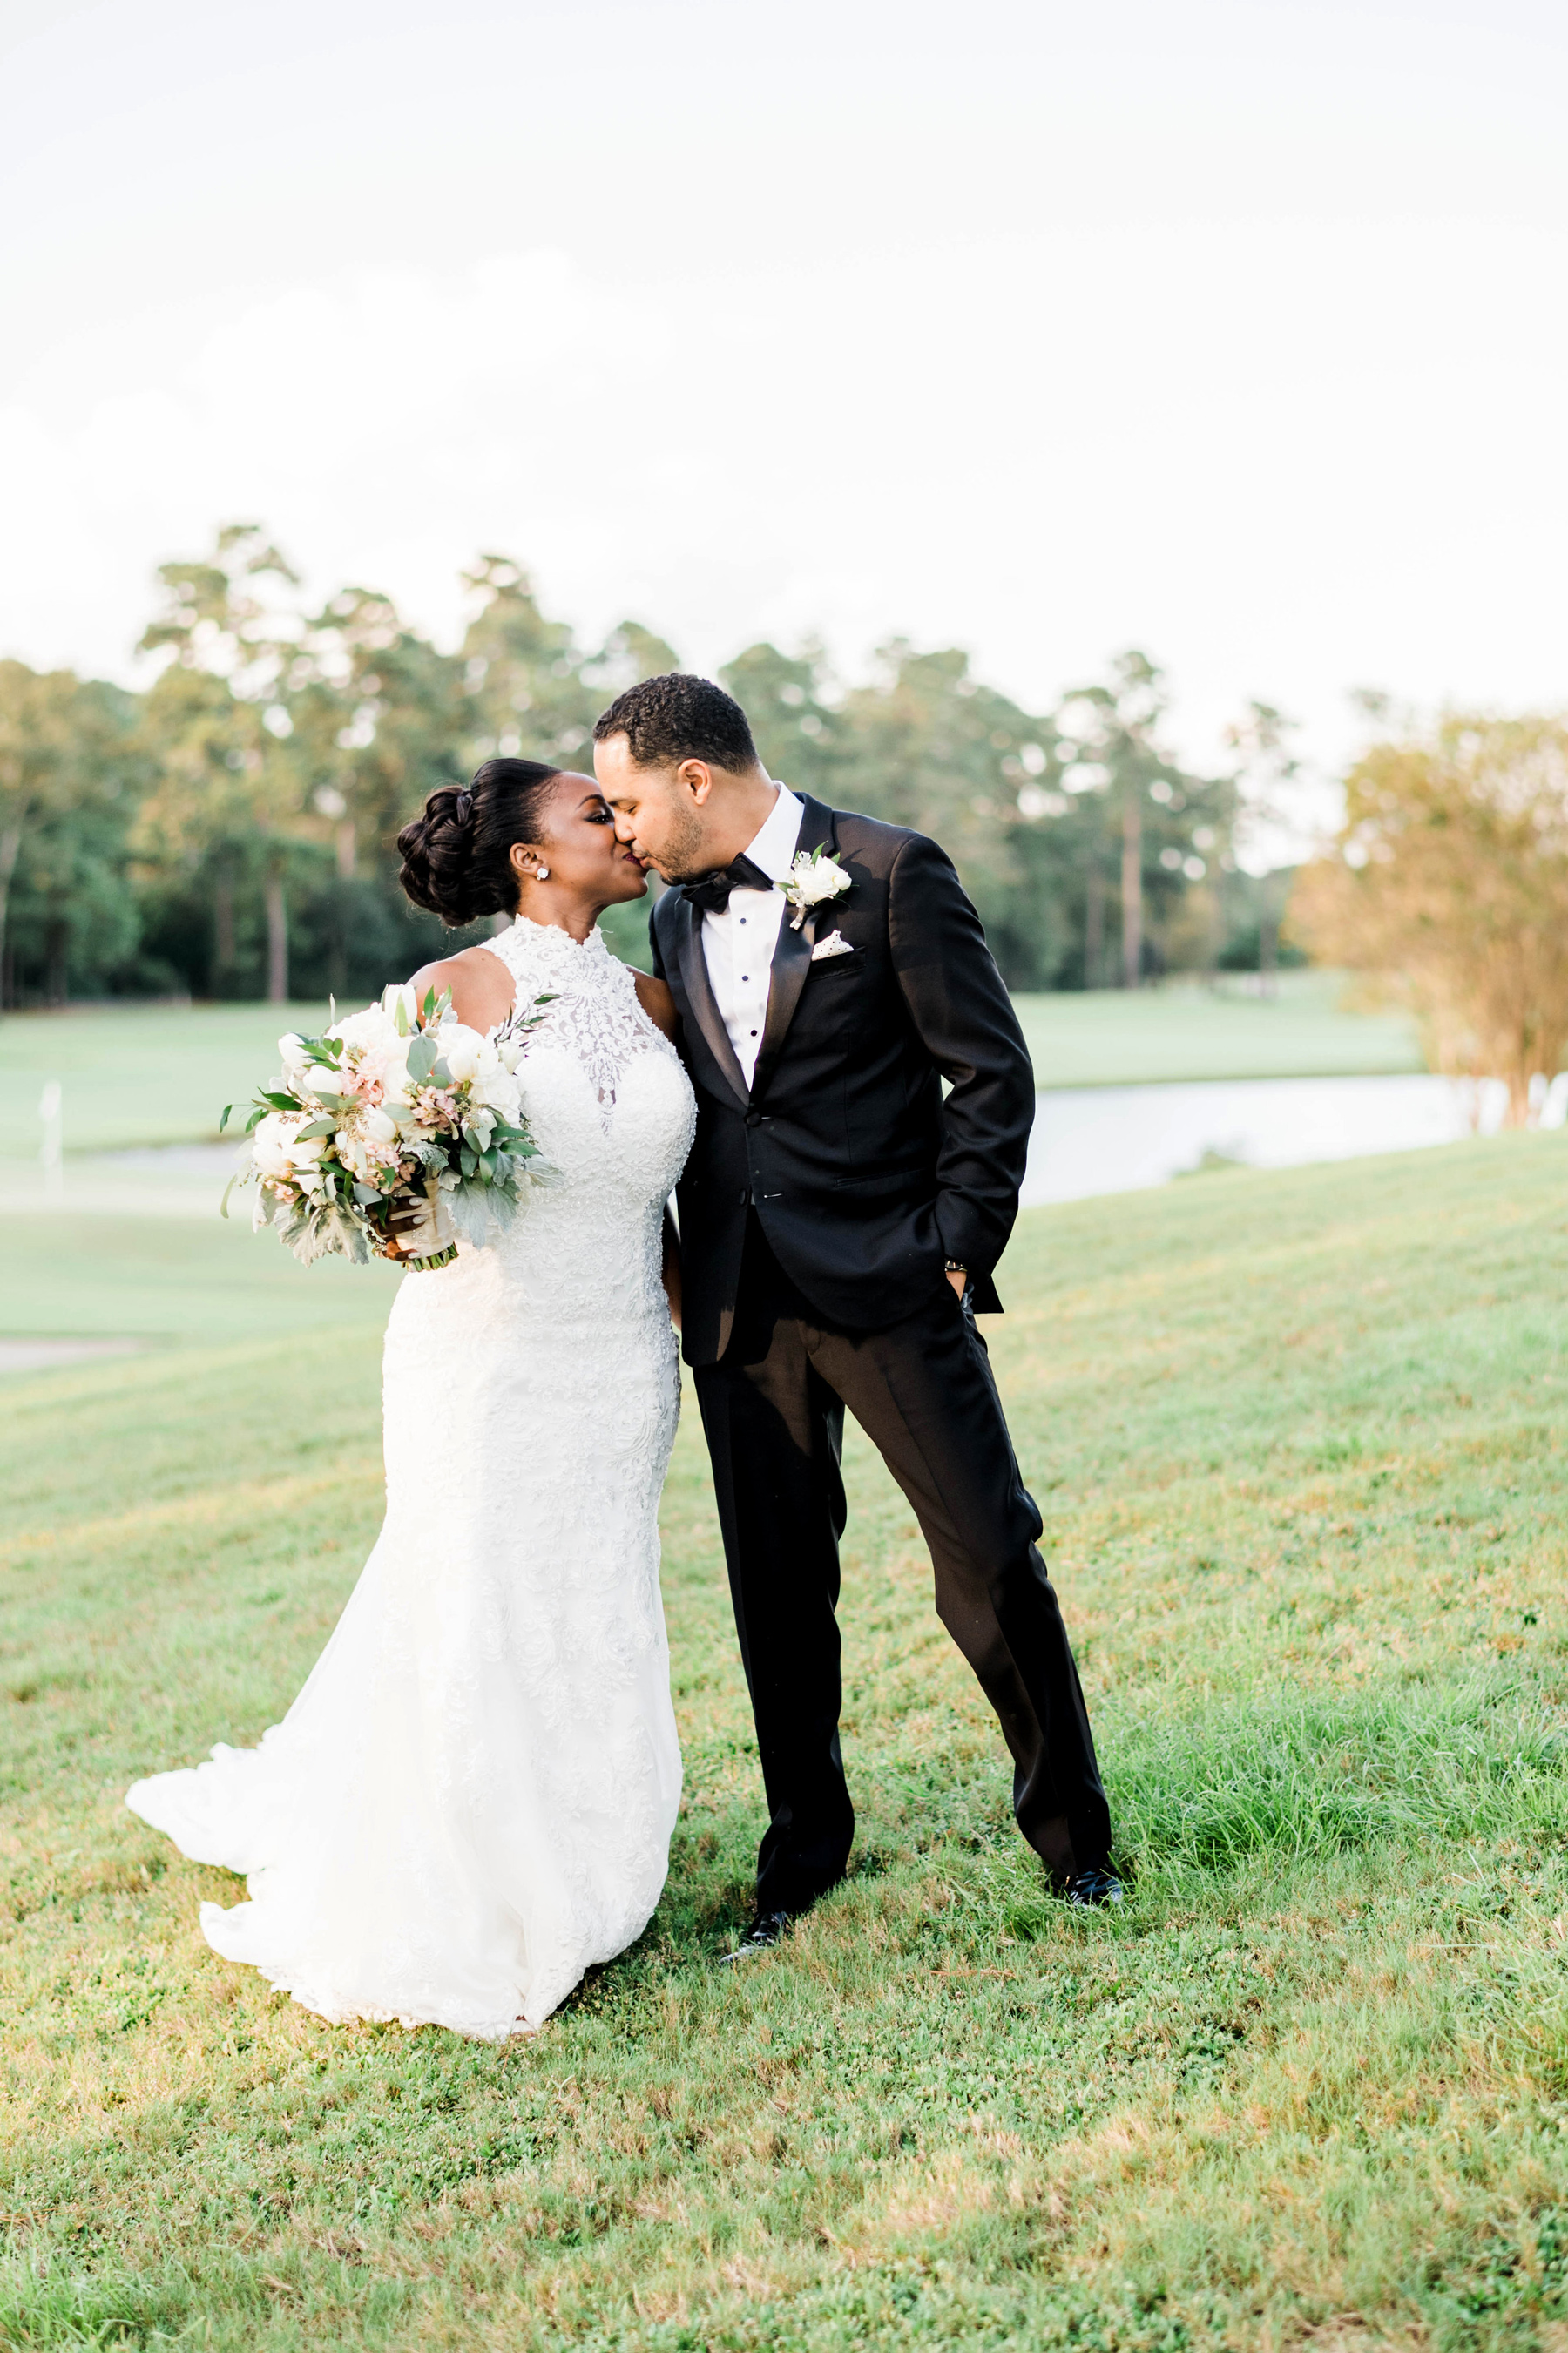 bride and groom share a kiss on a grassy lawn outdoors